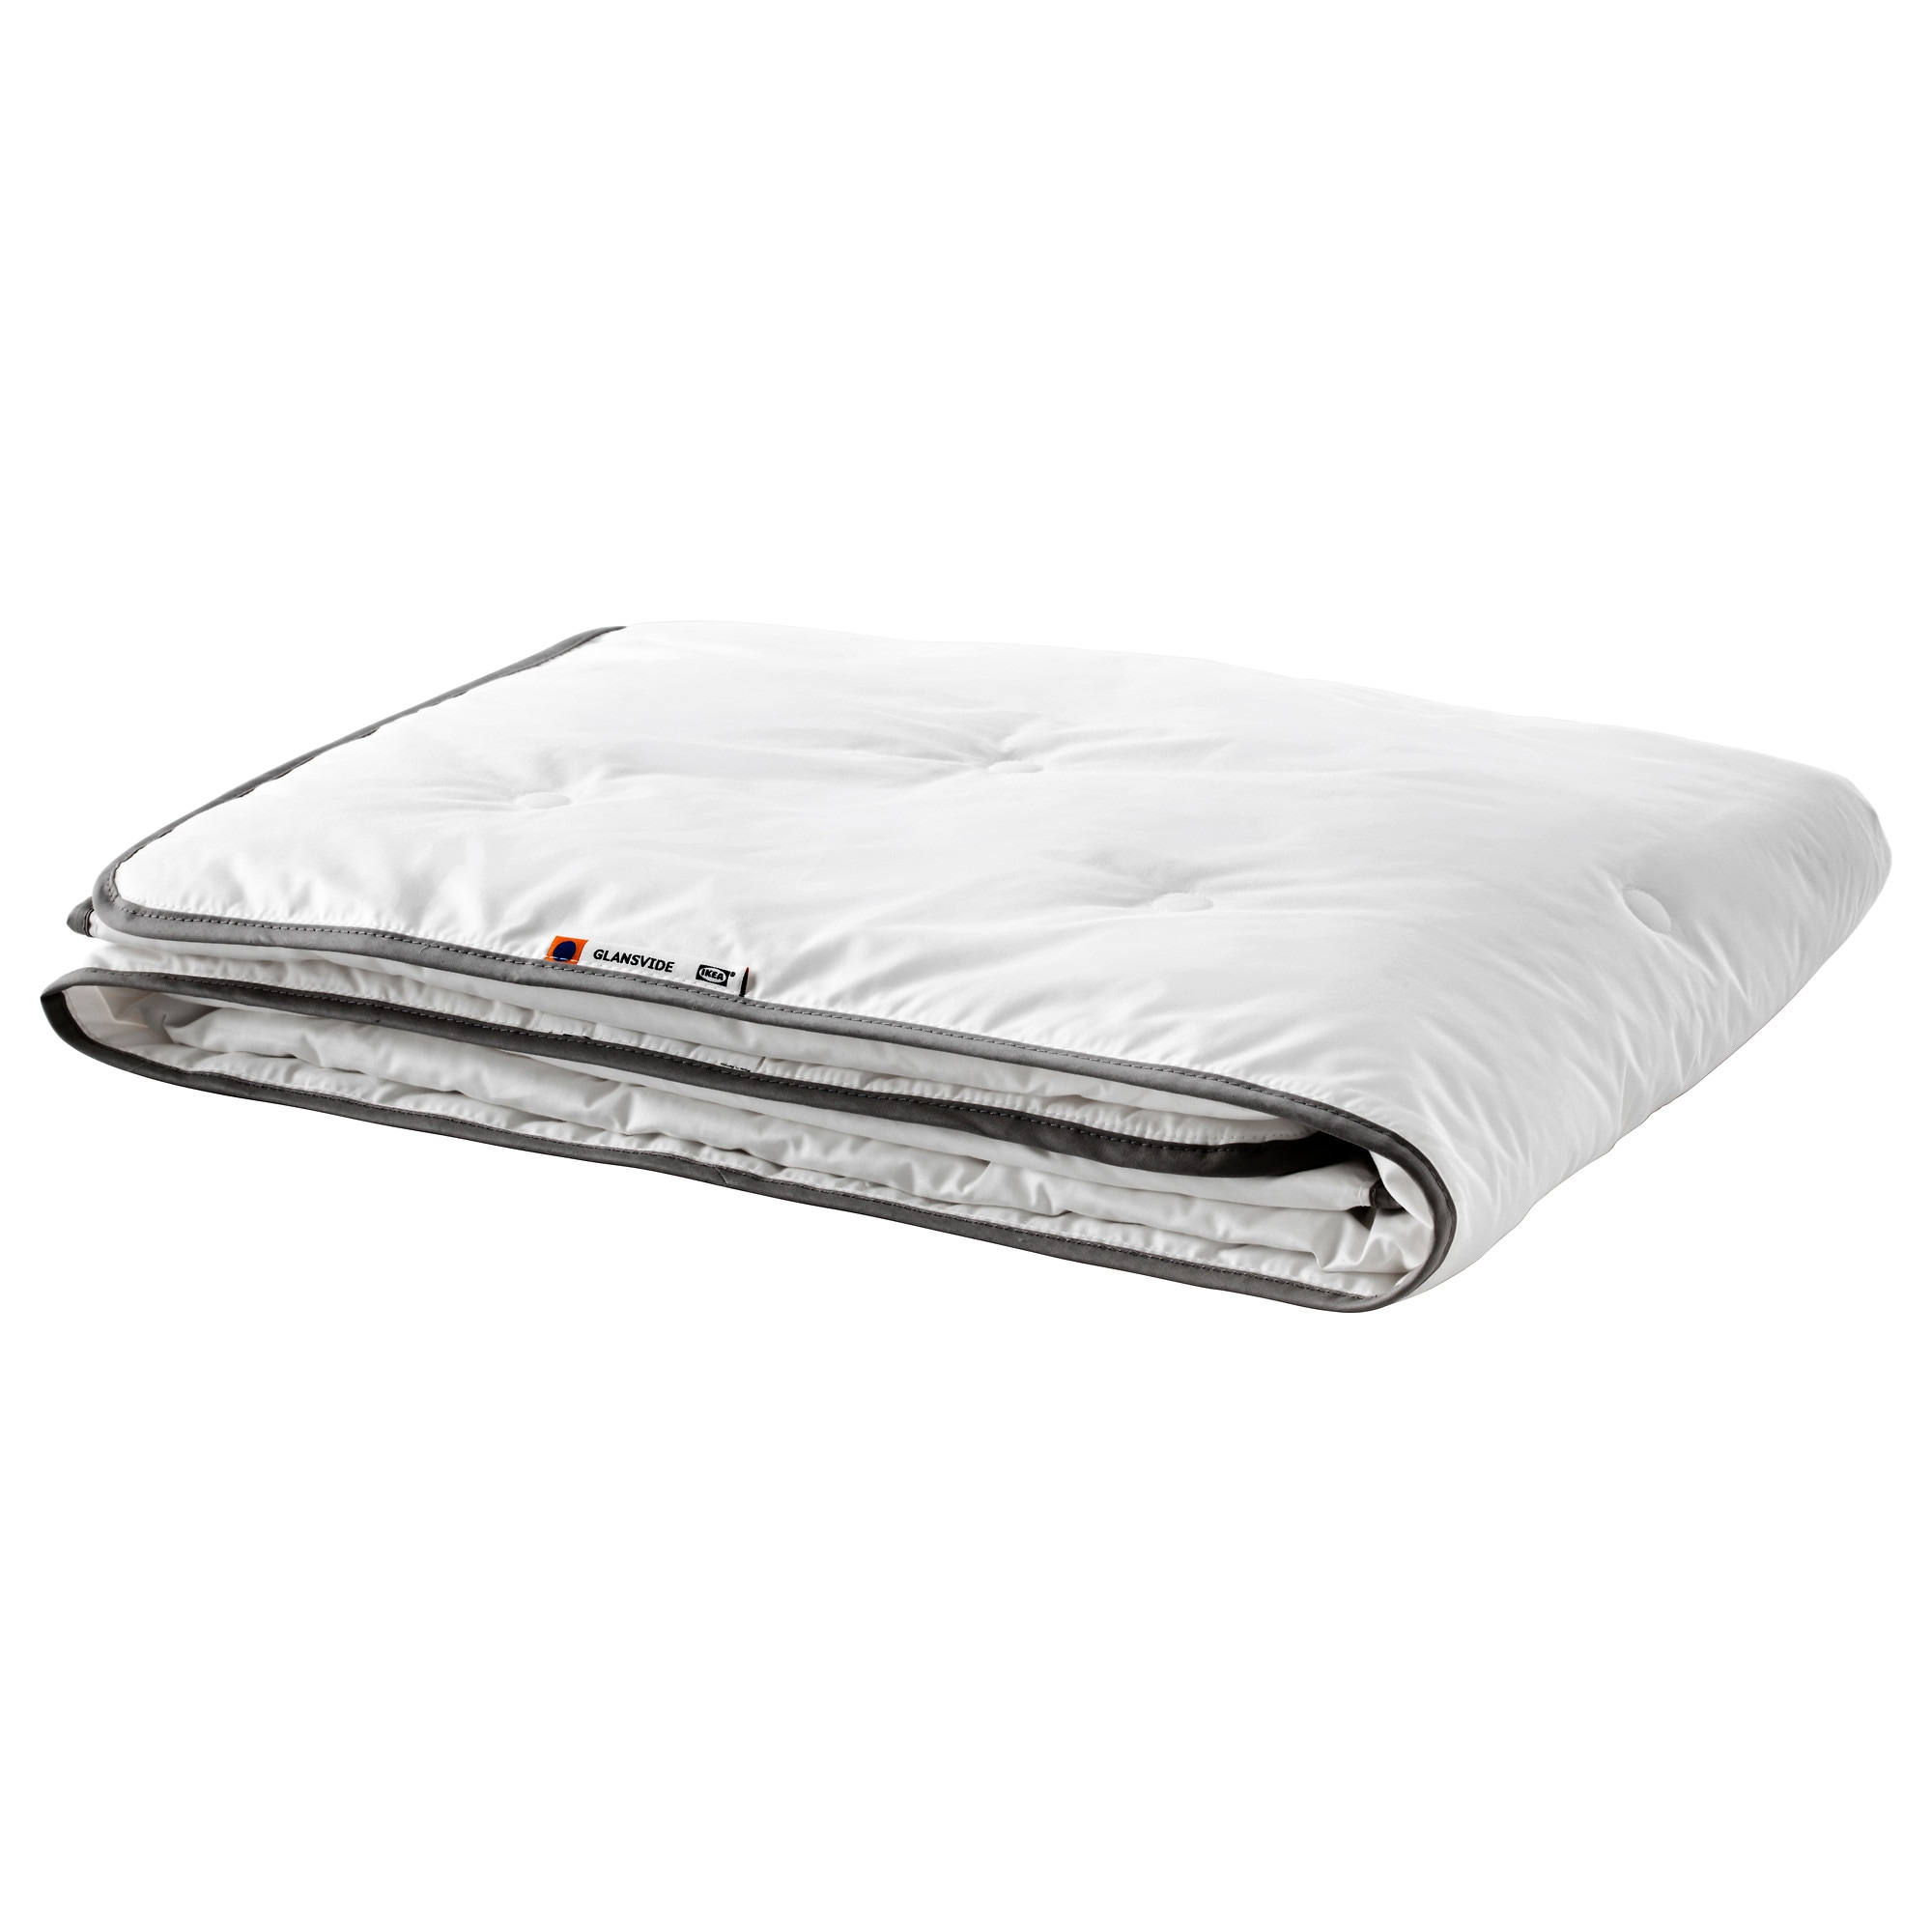 ikea comforters best comforter cozy reviews home decor in review down